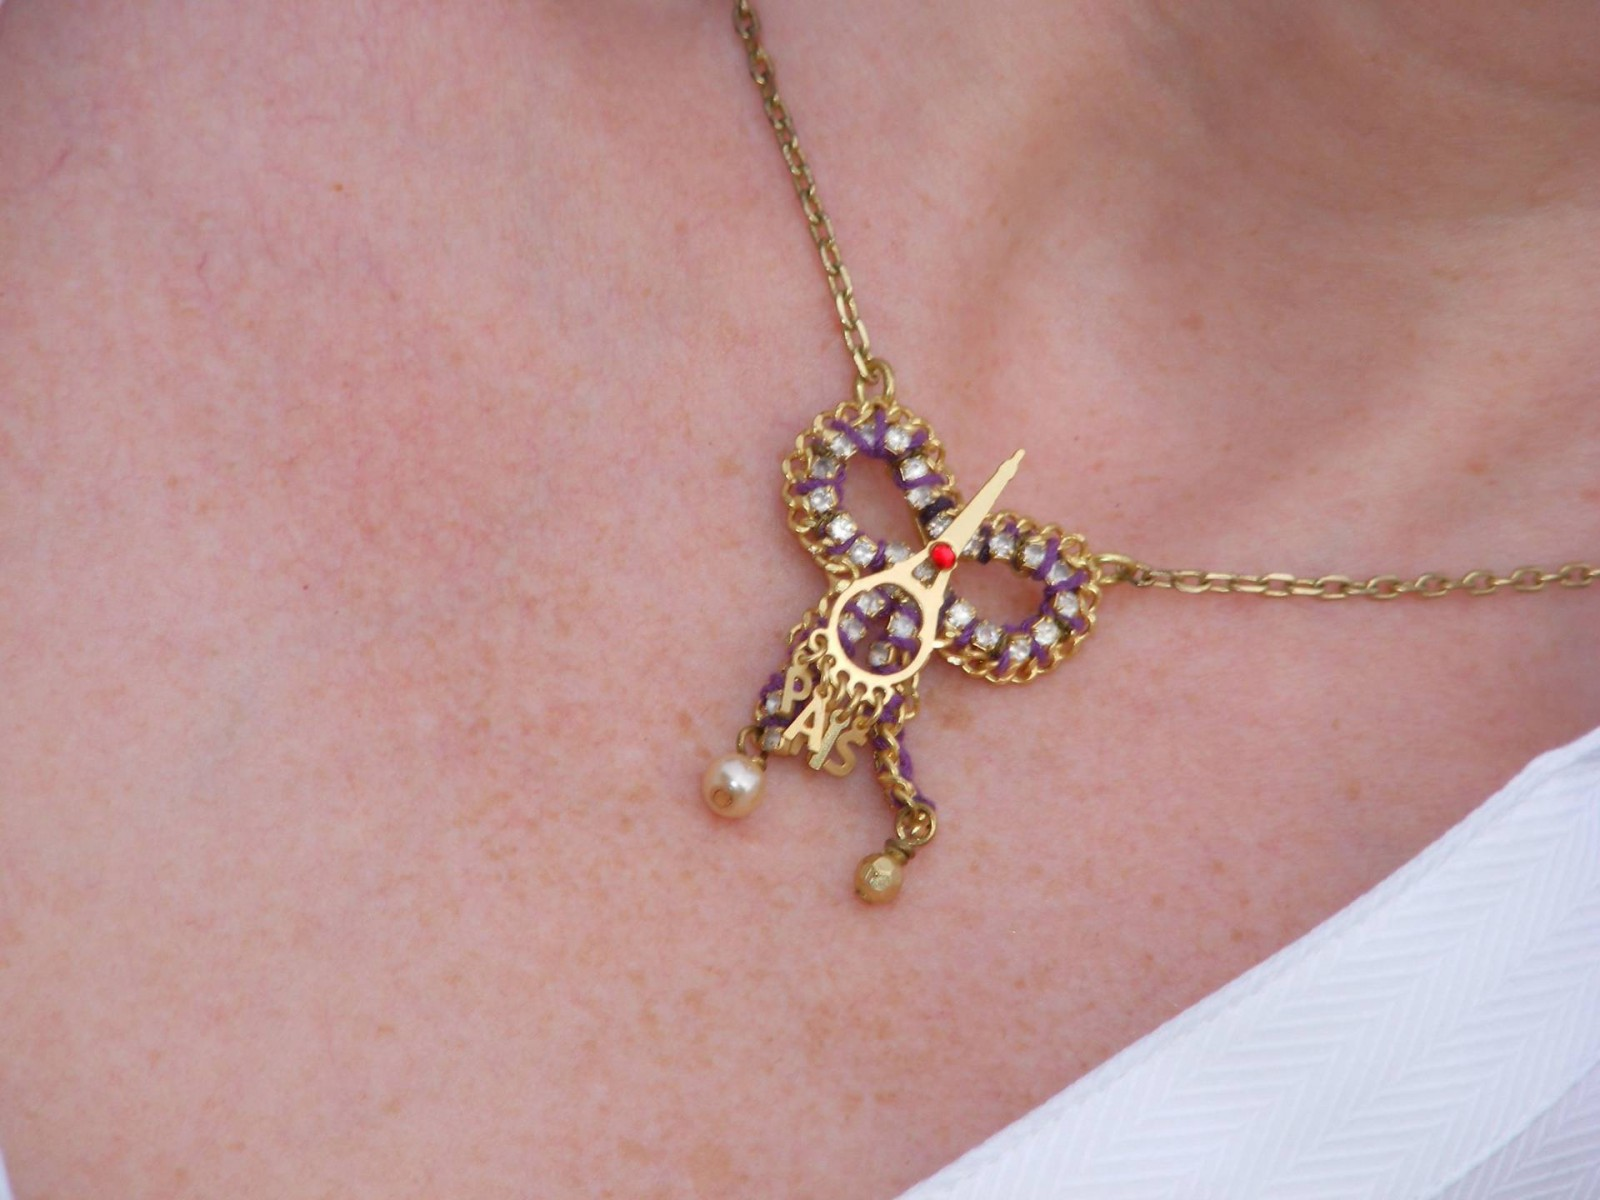 Les Nereides Paris necklace